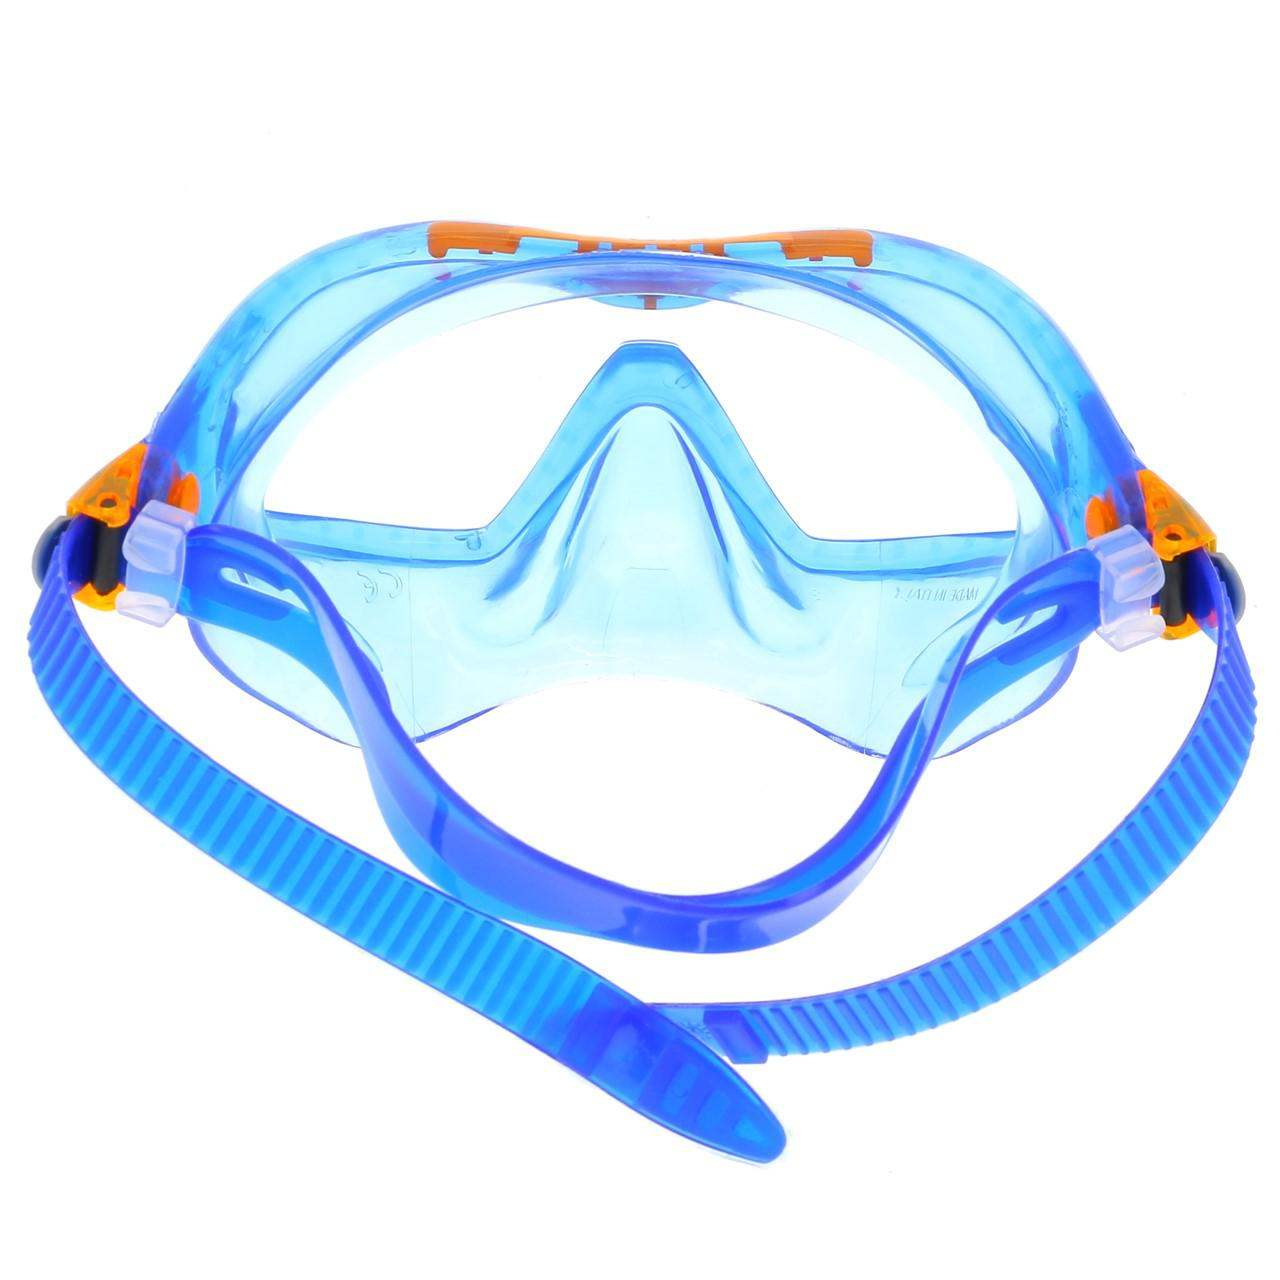 Mask-and-Tubas-Scuba-Dive-Aqualung-Combo-Mix-Blue-Org-Jr-Blue-28601-New thumbnail 3